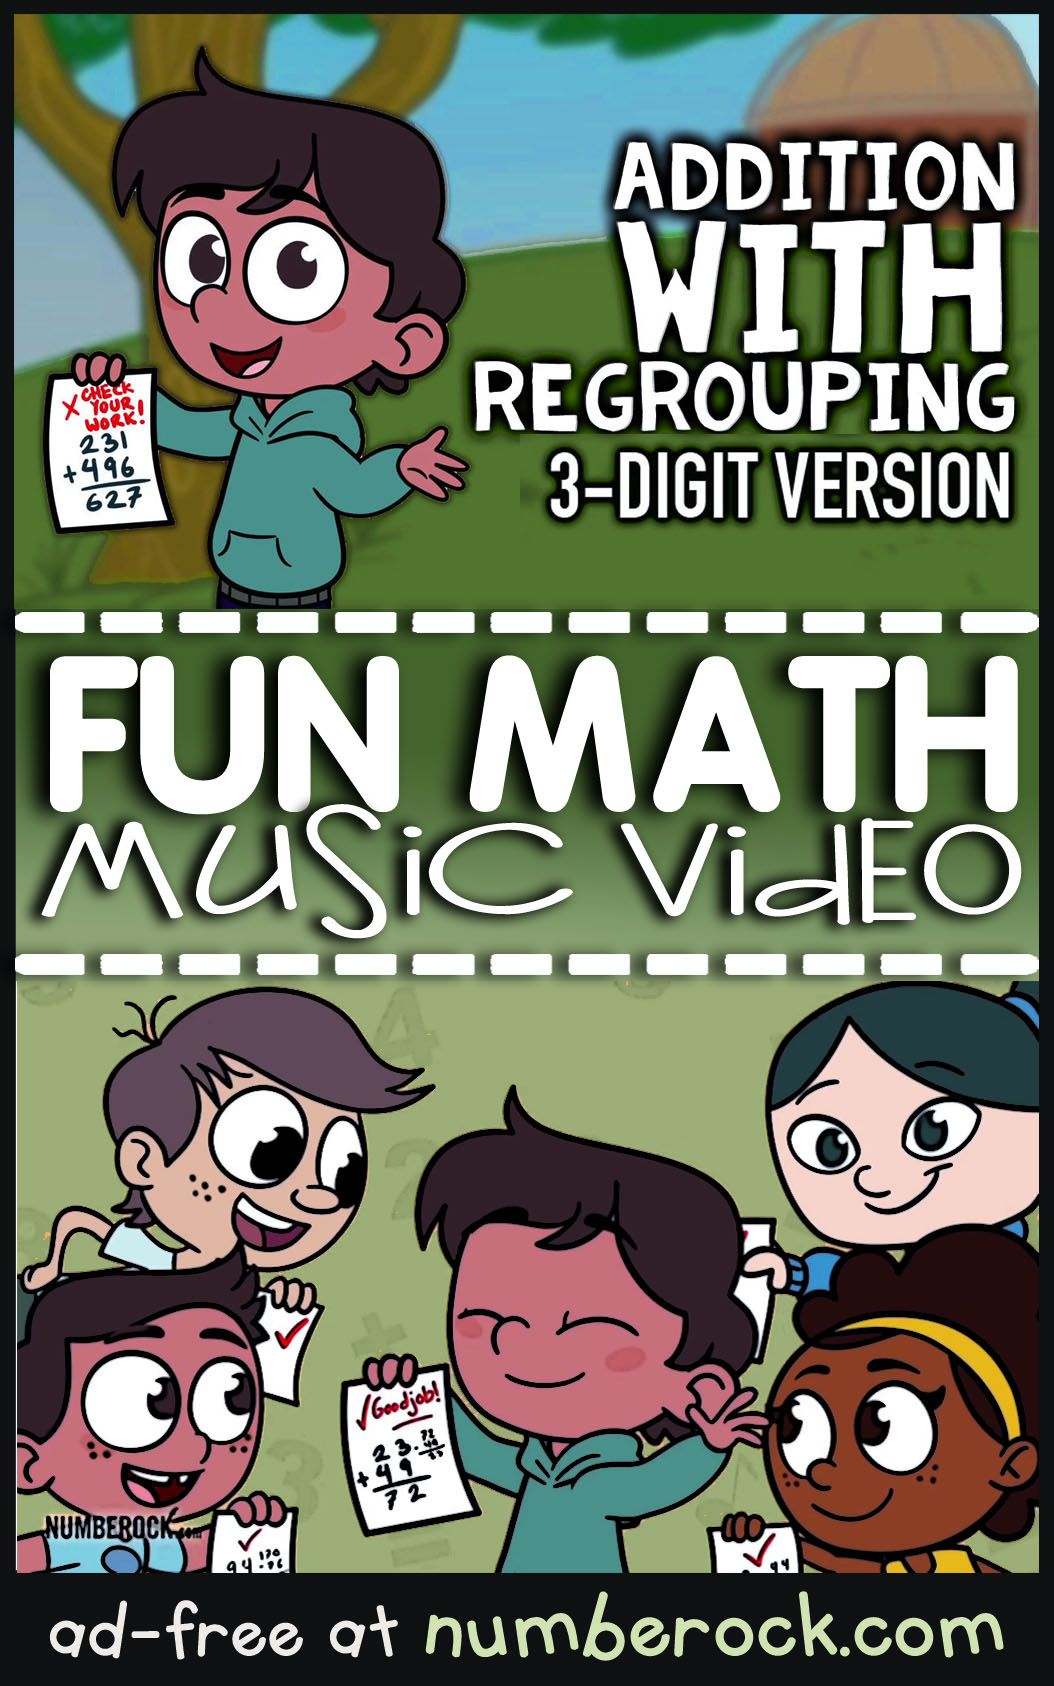 Addition With Regrouping Video 3 Digit Addition By Numberock Math Songs Regrouping Subtraction Activities Addition with regrouping video grade